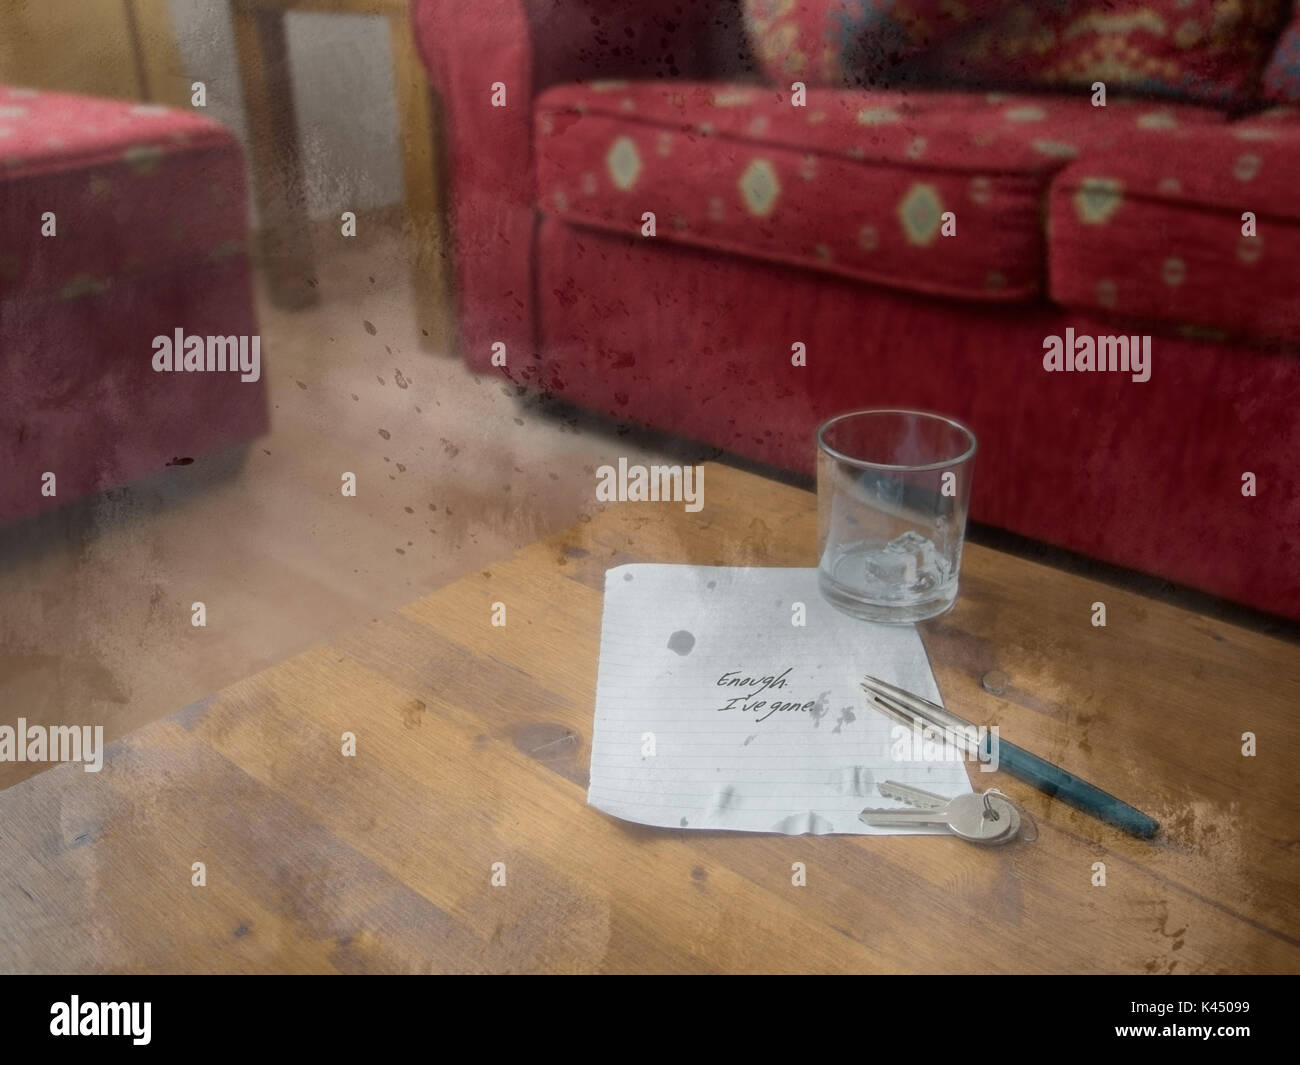 Divorce etc. Message left on table. Gone. - Stock Image